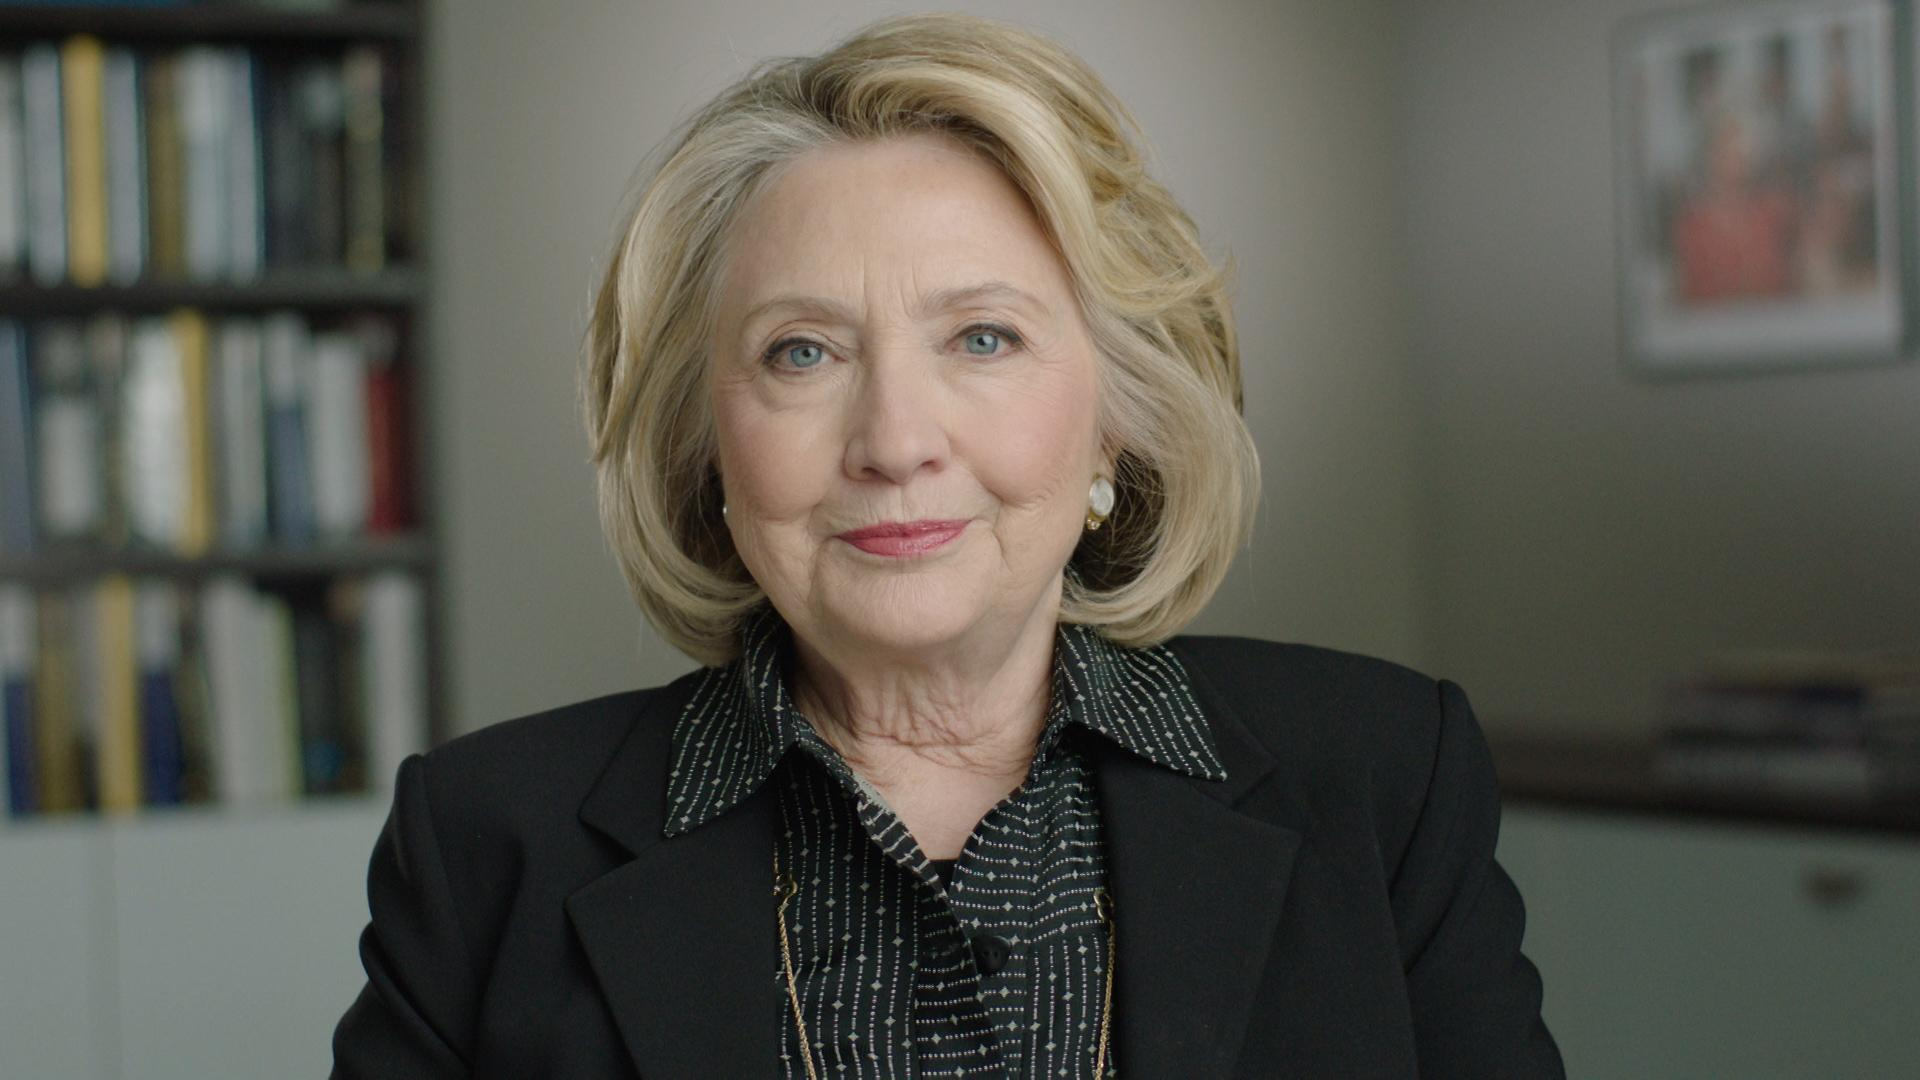 Hillary Clinton says Speaker Nancy Pelosi proves it 'takes a woman' to get things done